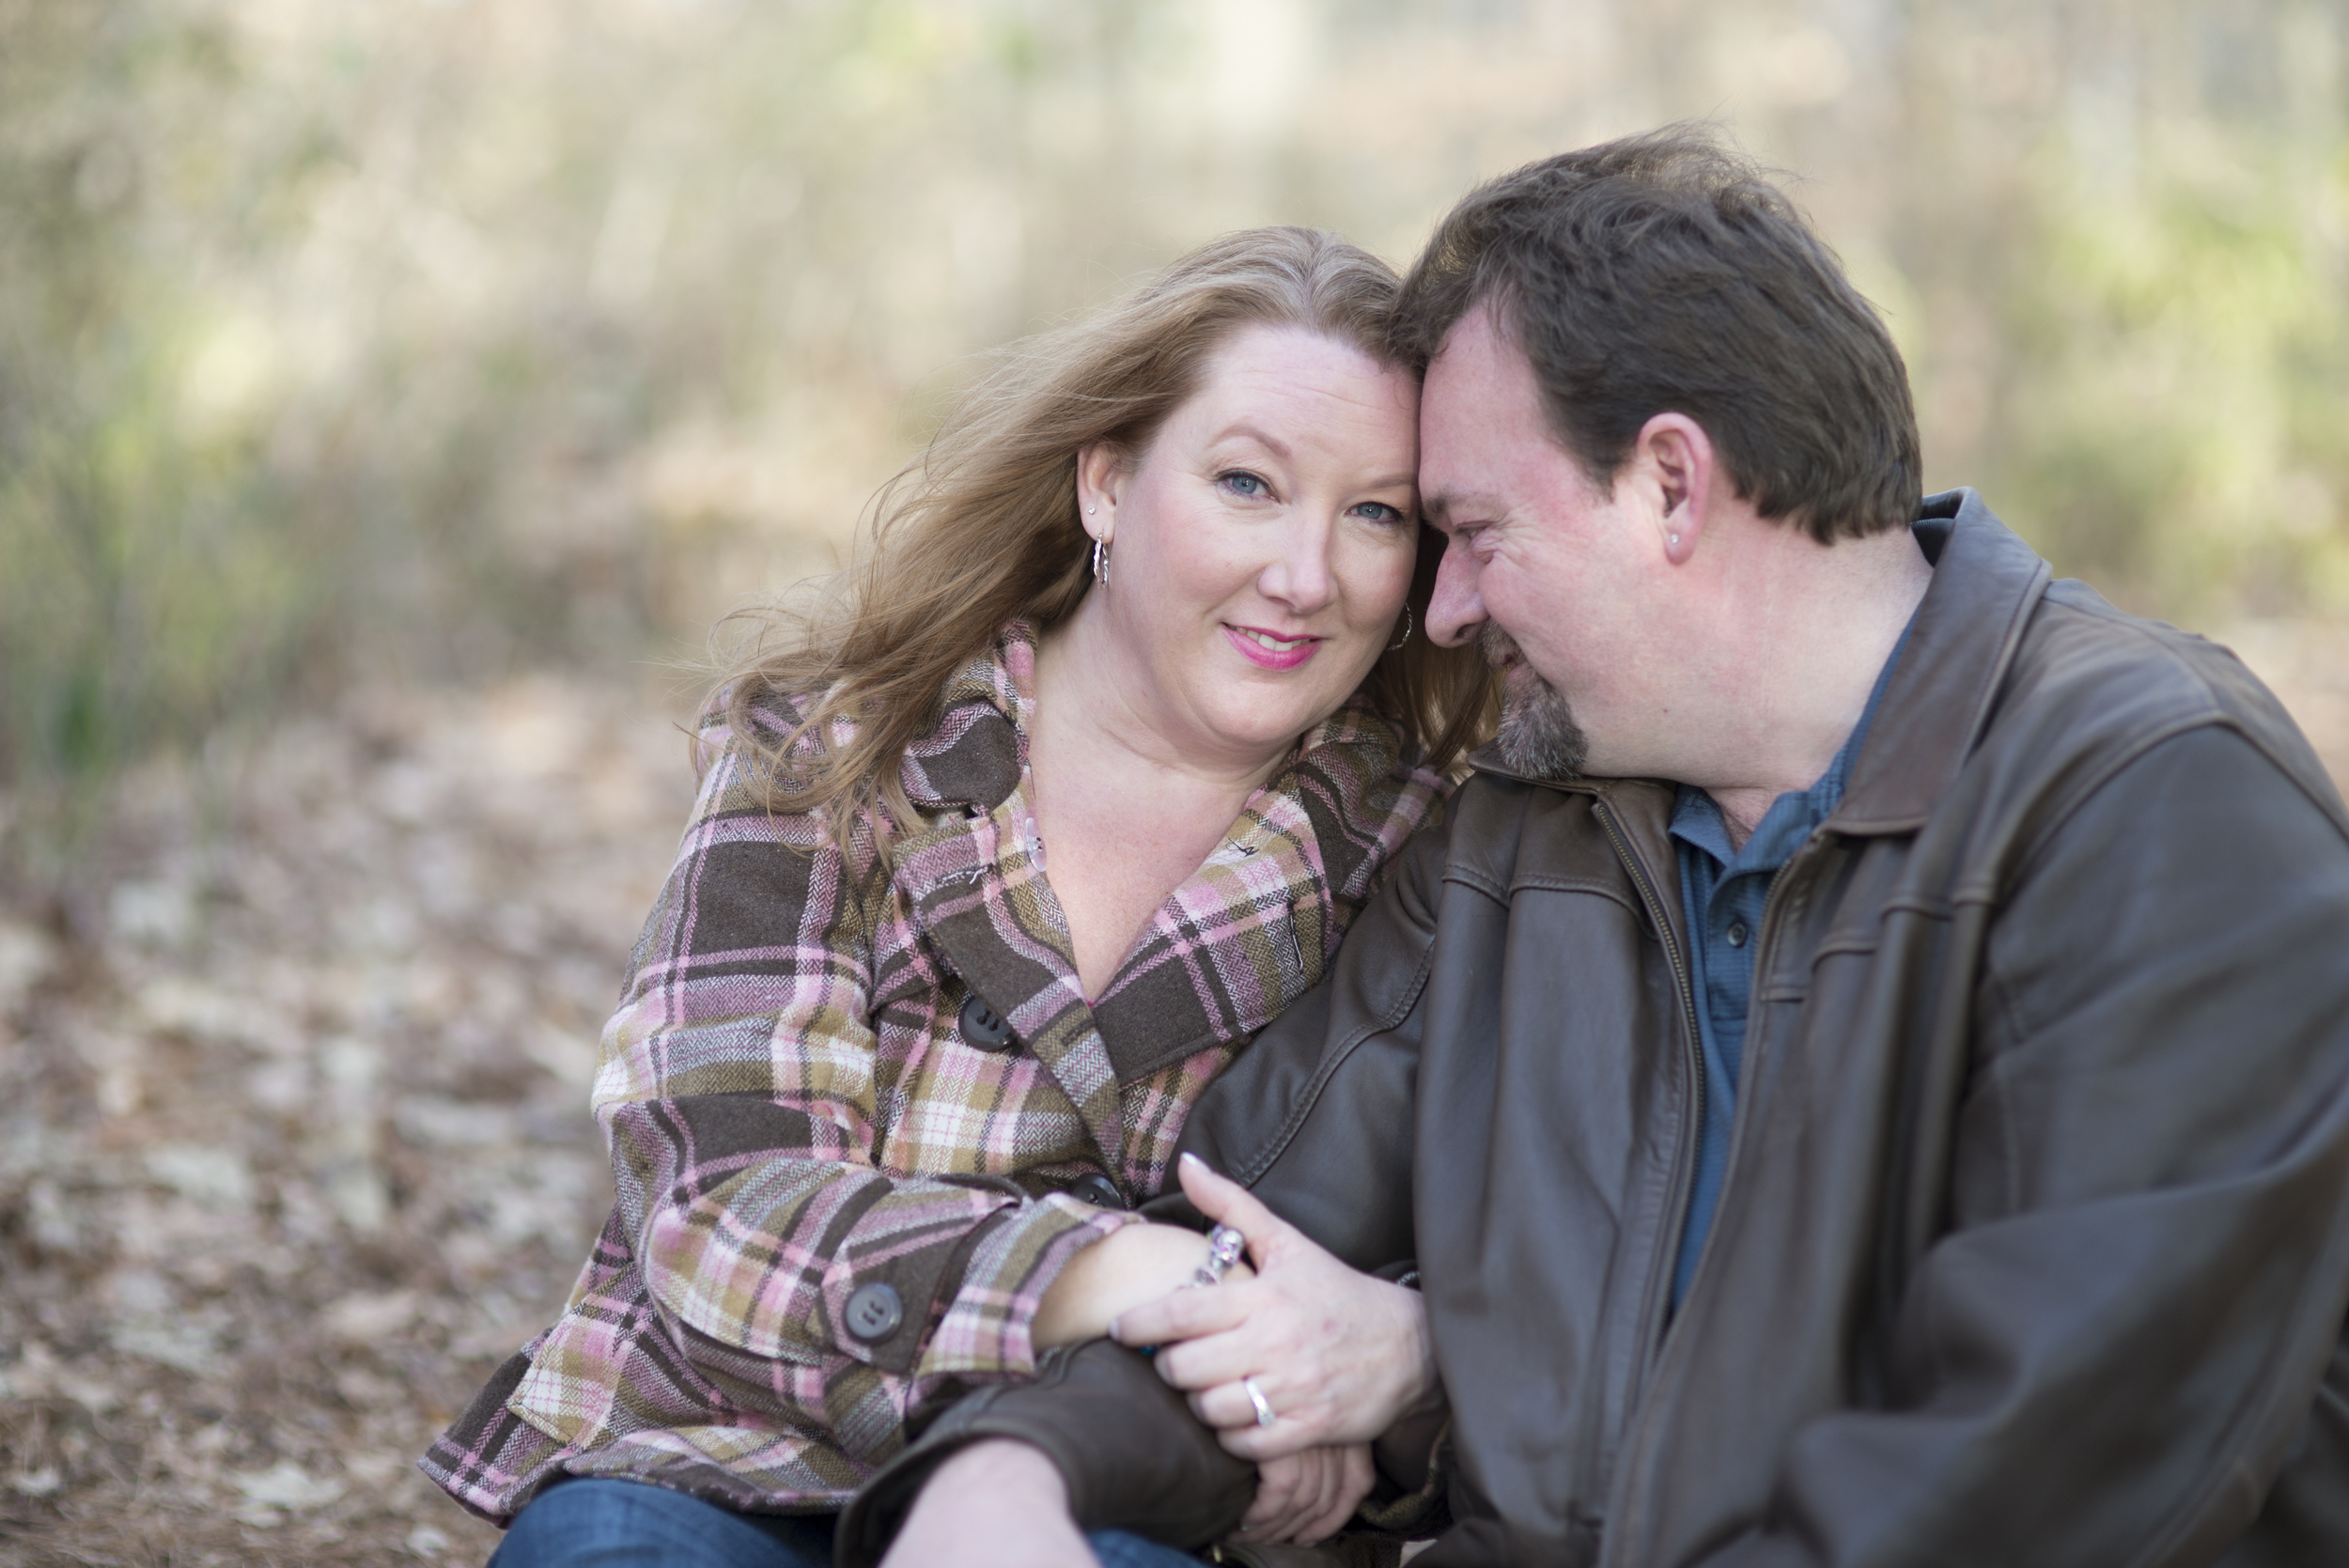 Winter engagement session in January